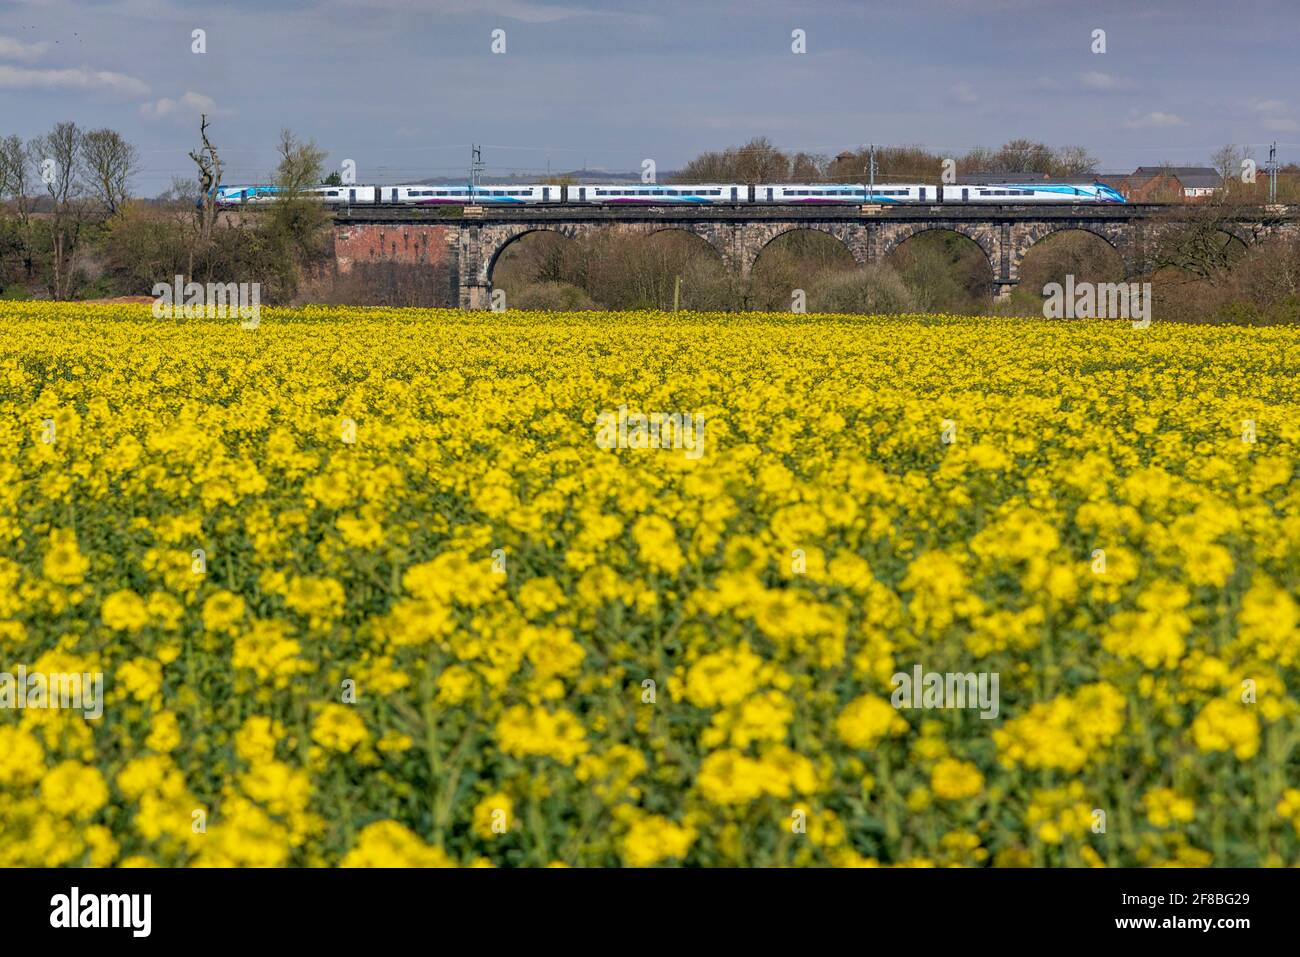 A train crossing the Sankey viaduct at Earlestown over the Sankey Valley. Trans Pennine express train.  heading west towards Newcastle. Stock Photo